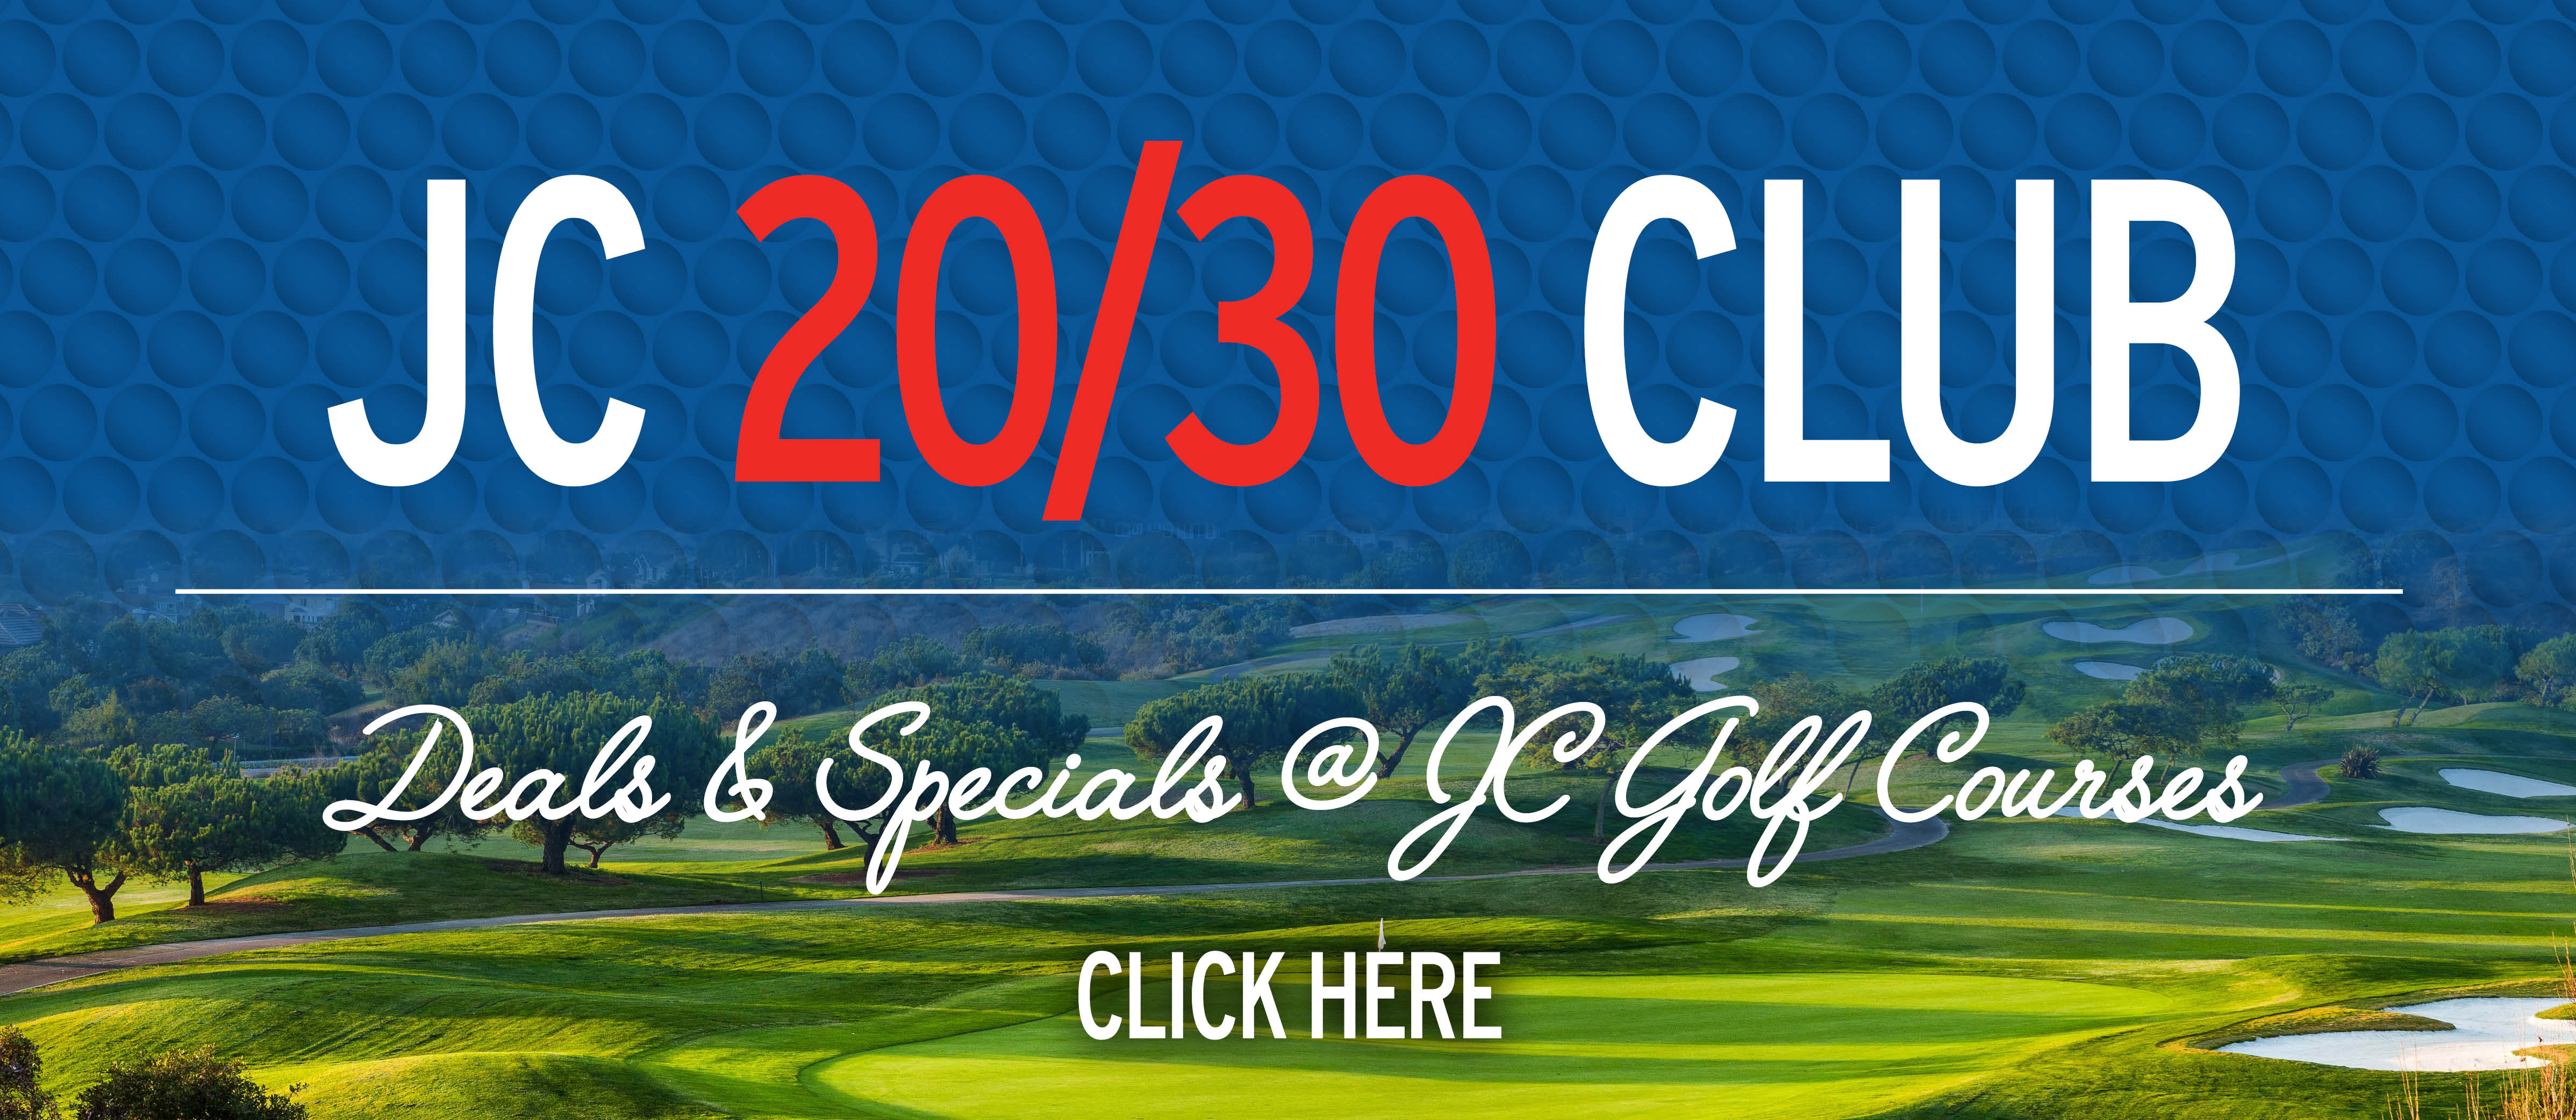 JC-2030-Club-Weekly-Specials-Slider